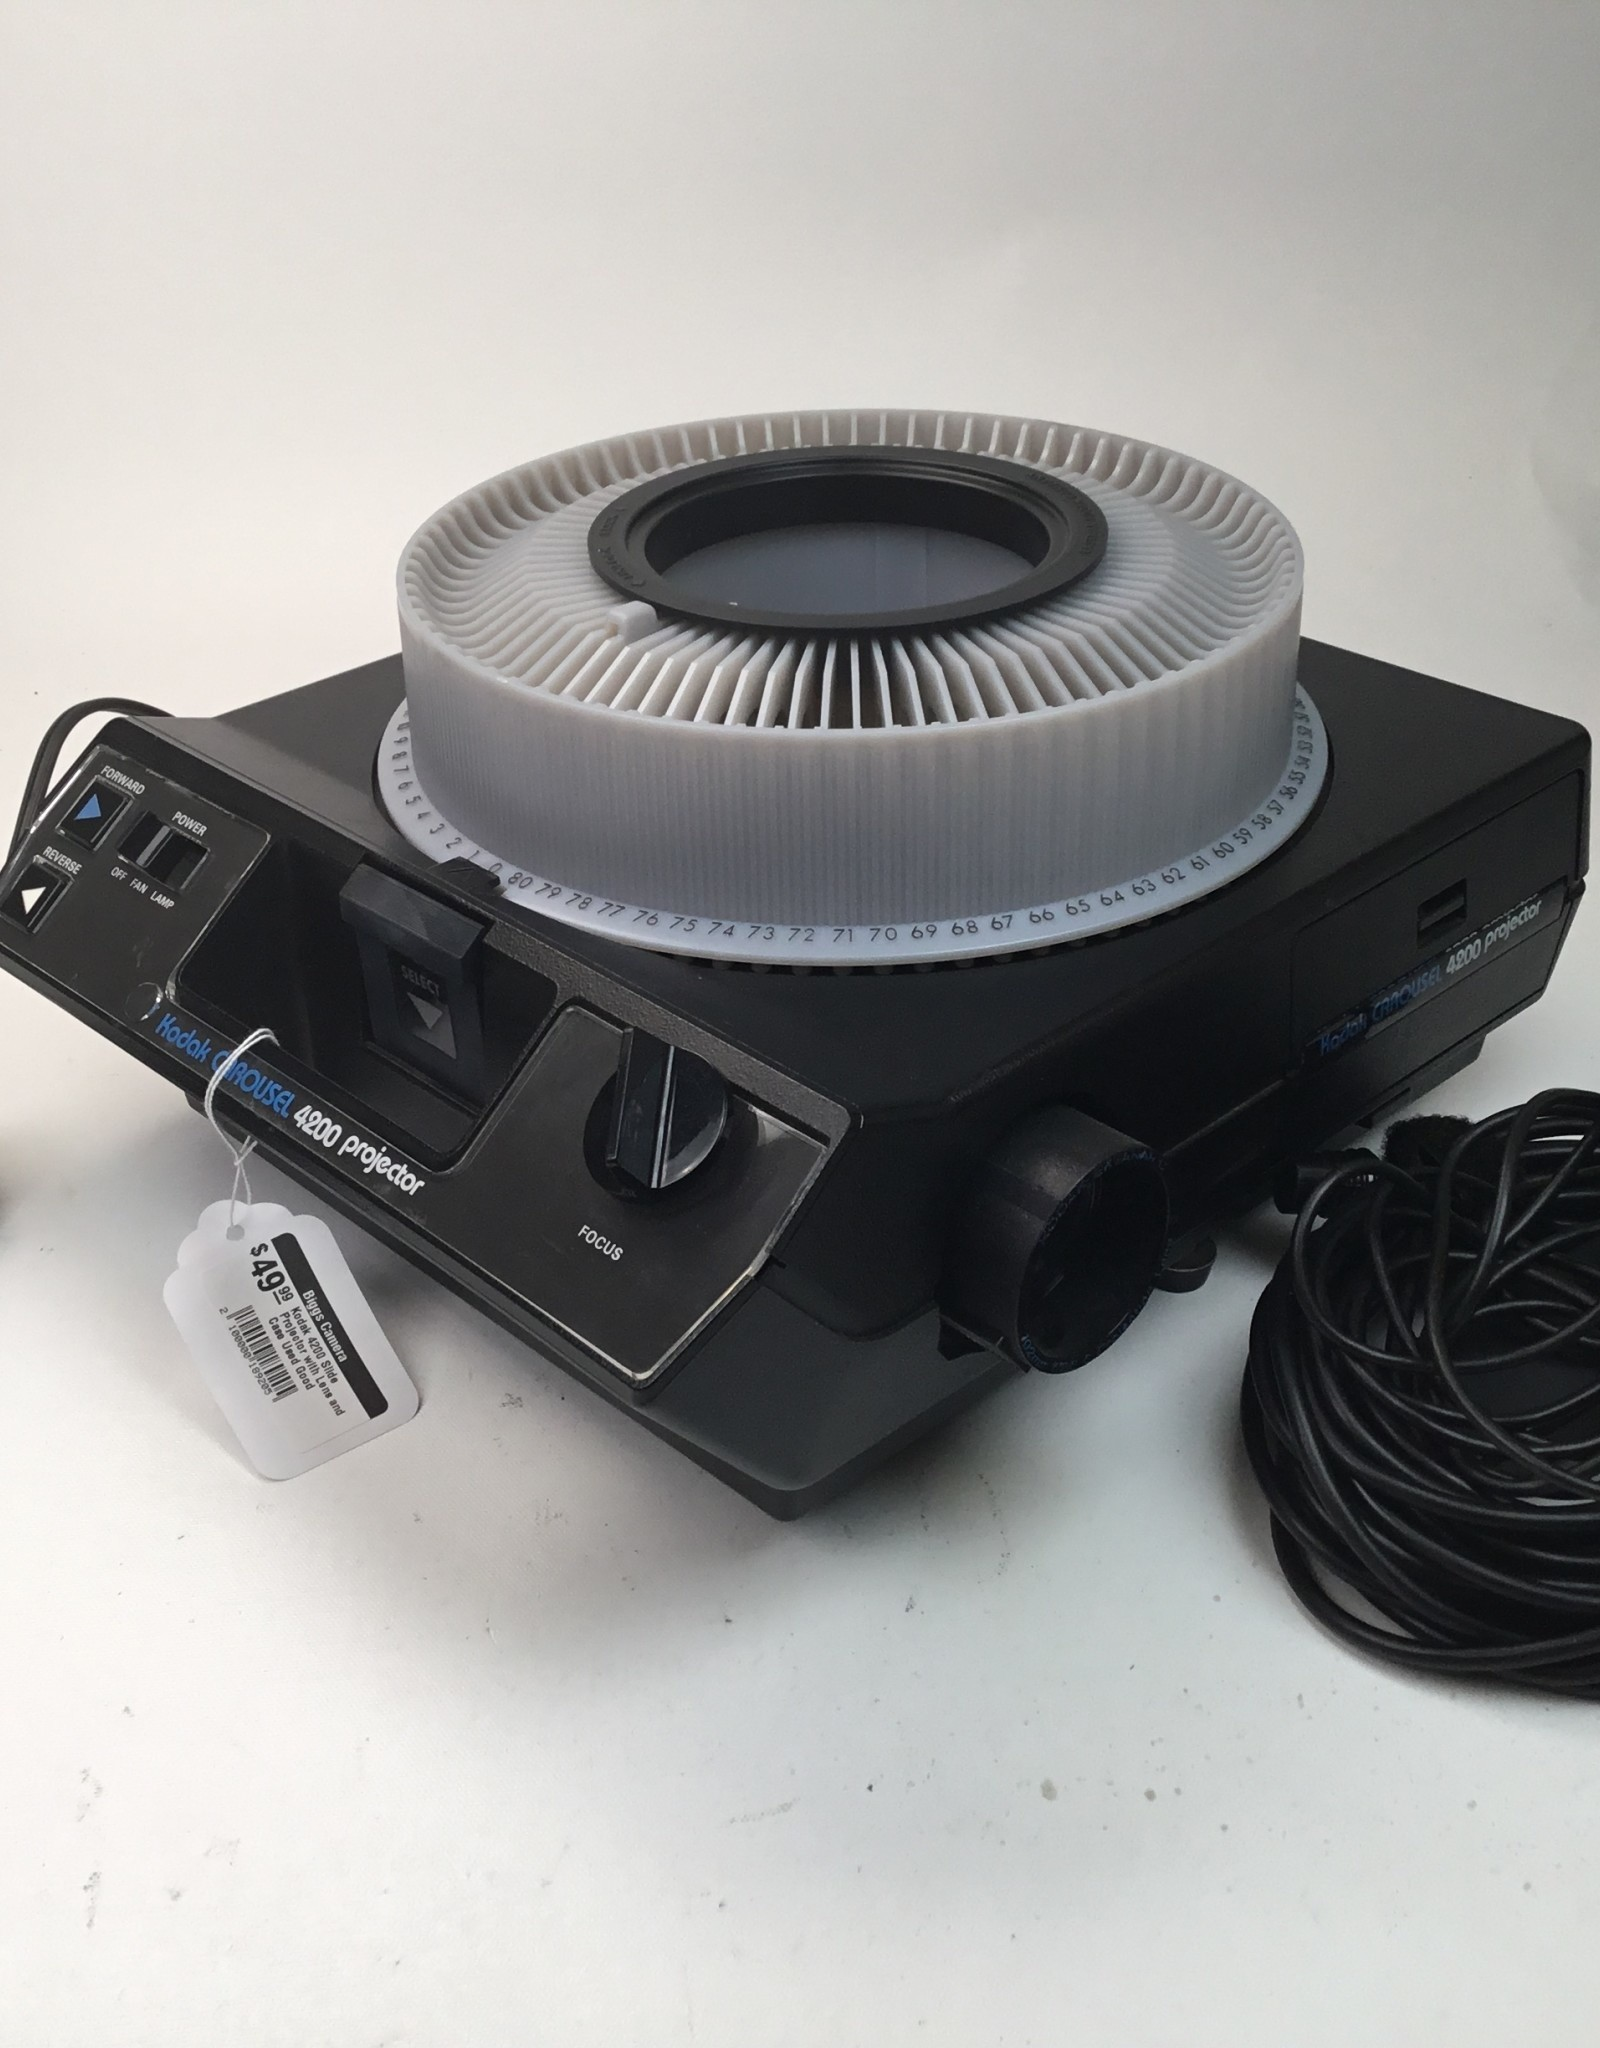 Kodak 4200 Slide Projector with Lens and Case Used Good